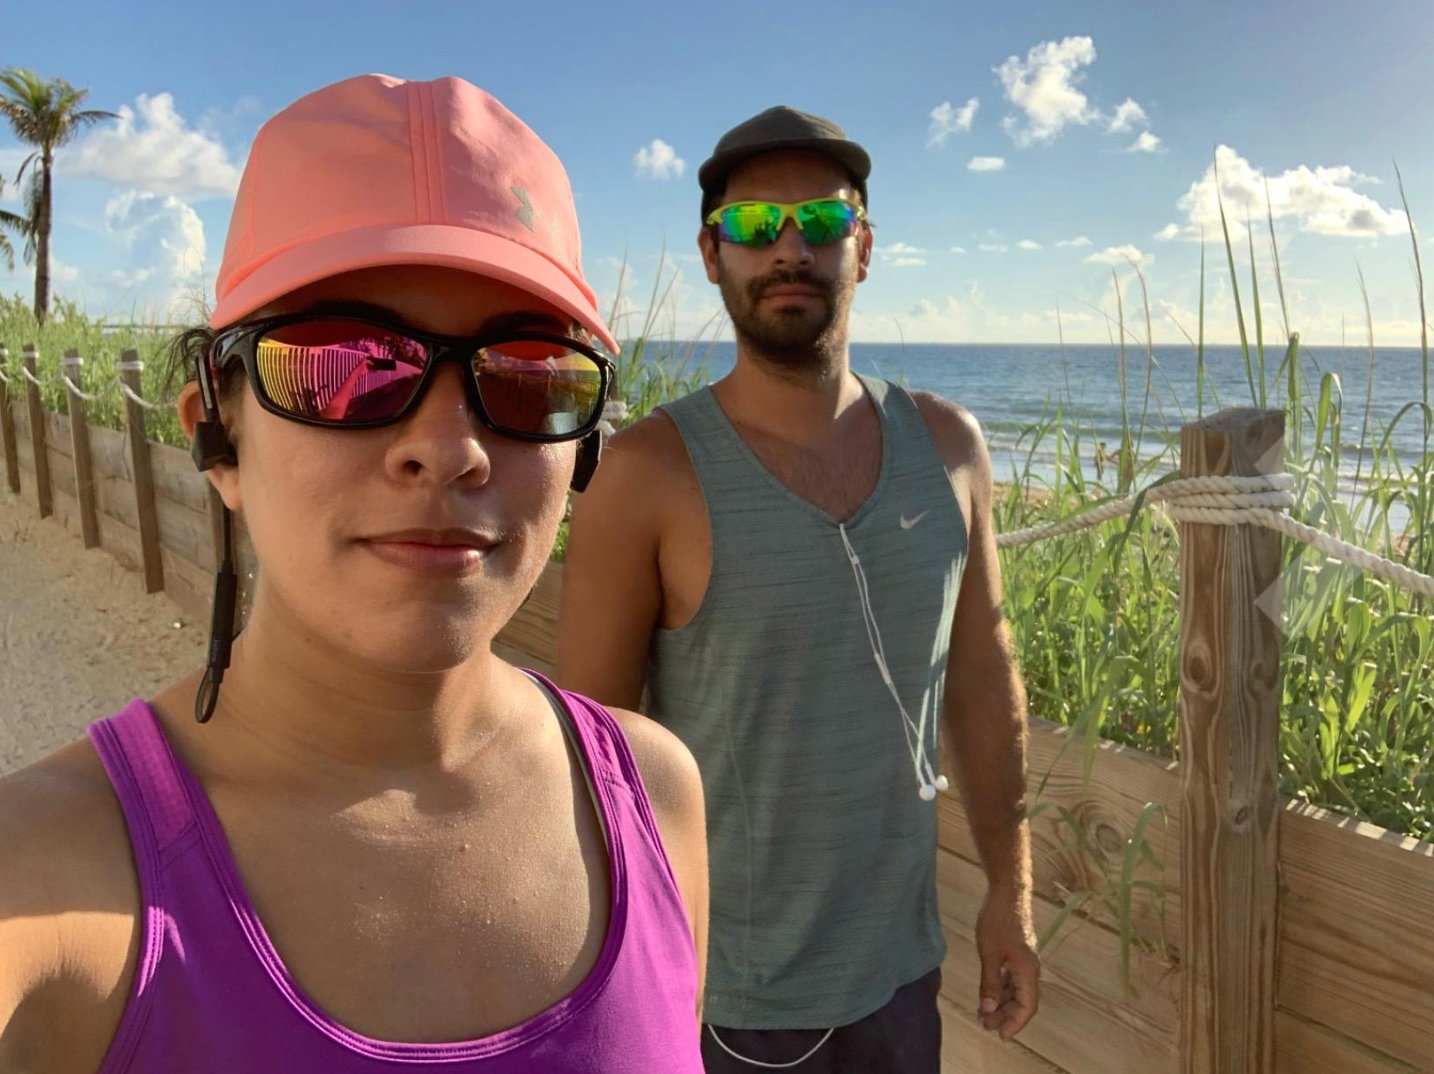 Two reviewers working out in polarized sunglasses, one in a black pair and one in a white pair